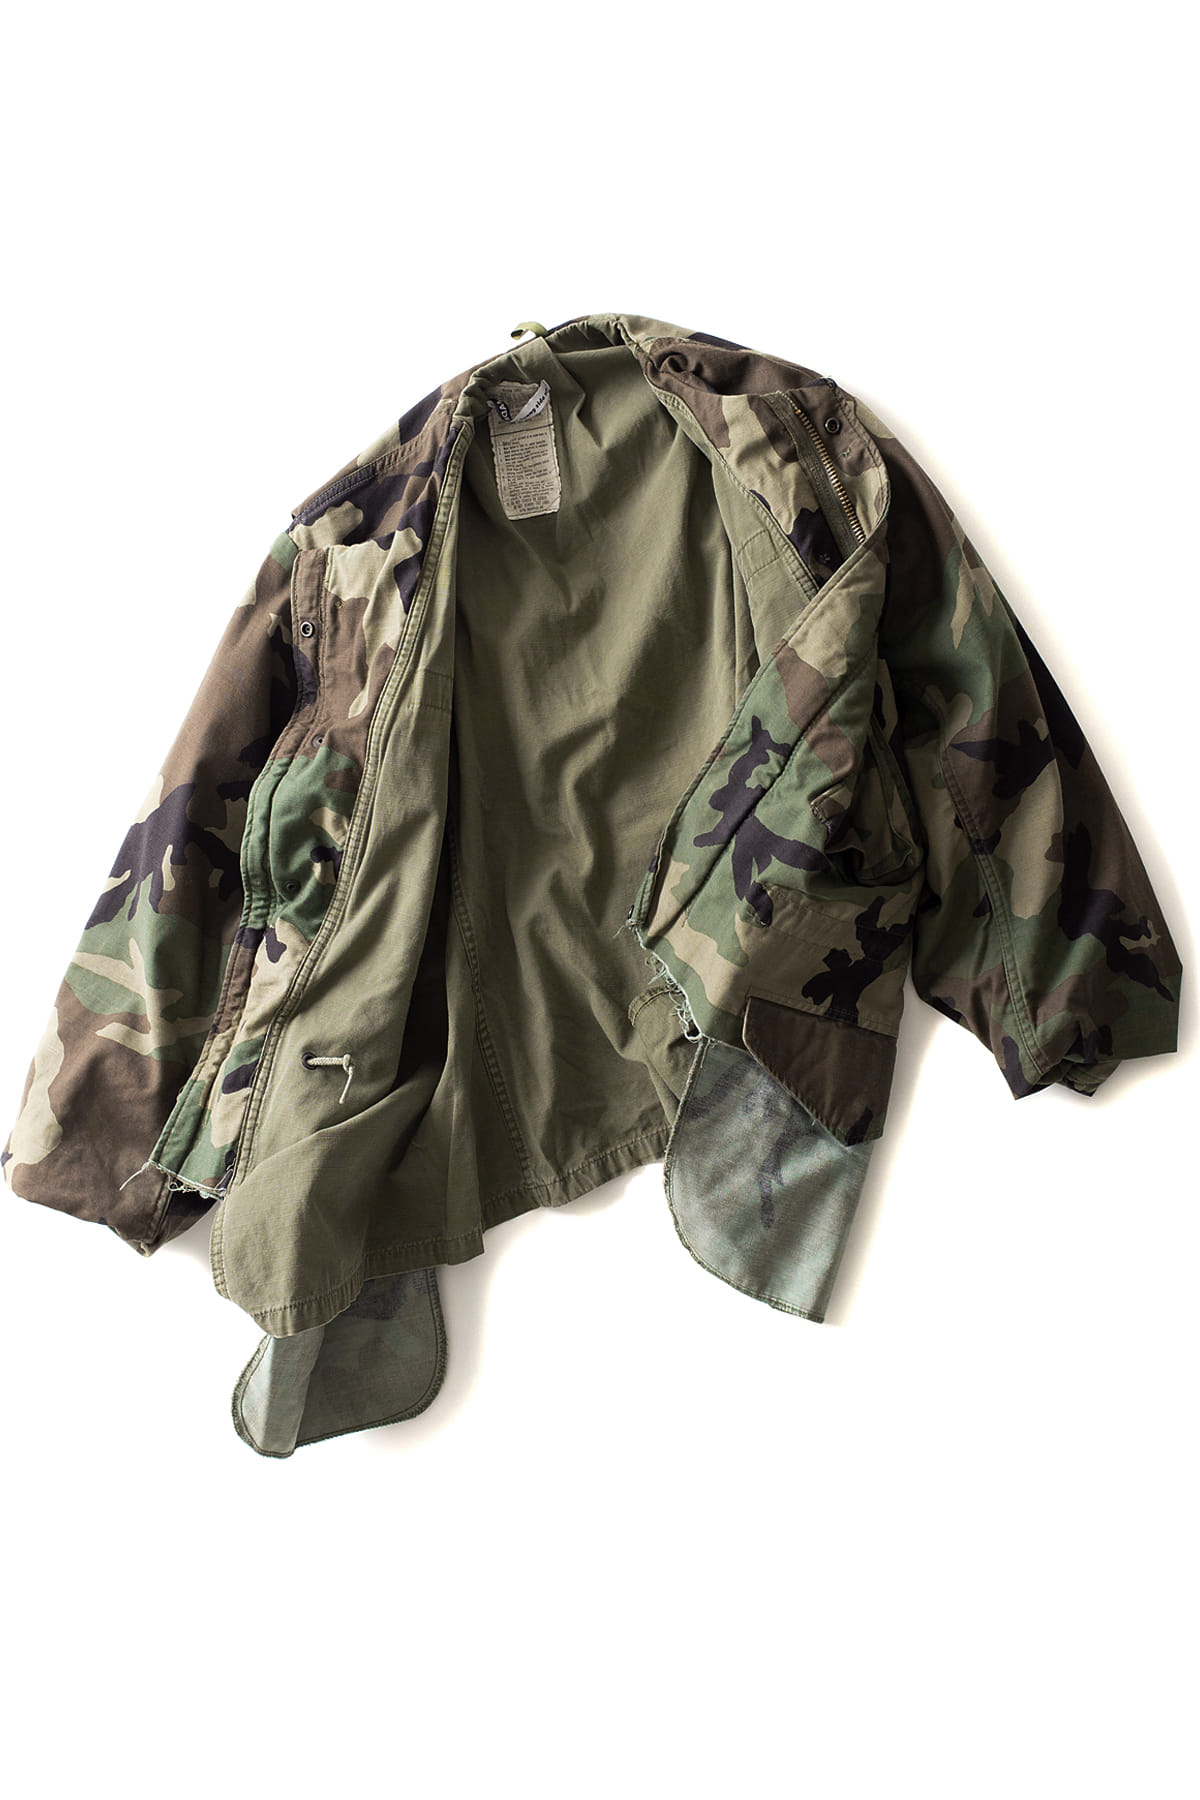 MADE by Sunny side up : M-65 Camo Jacket (C)